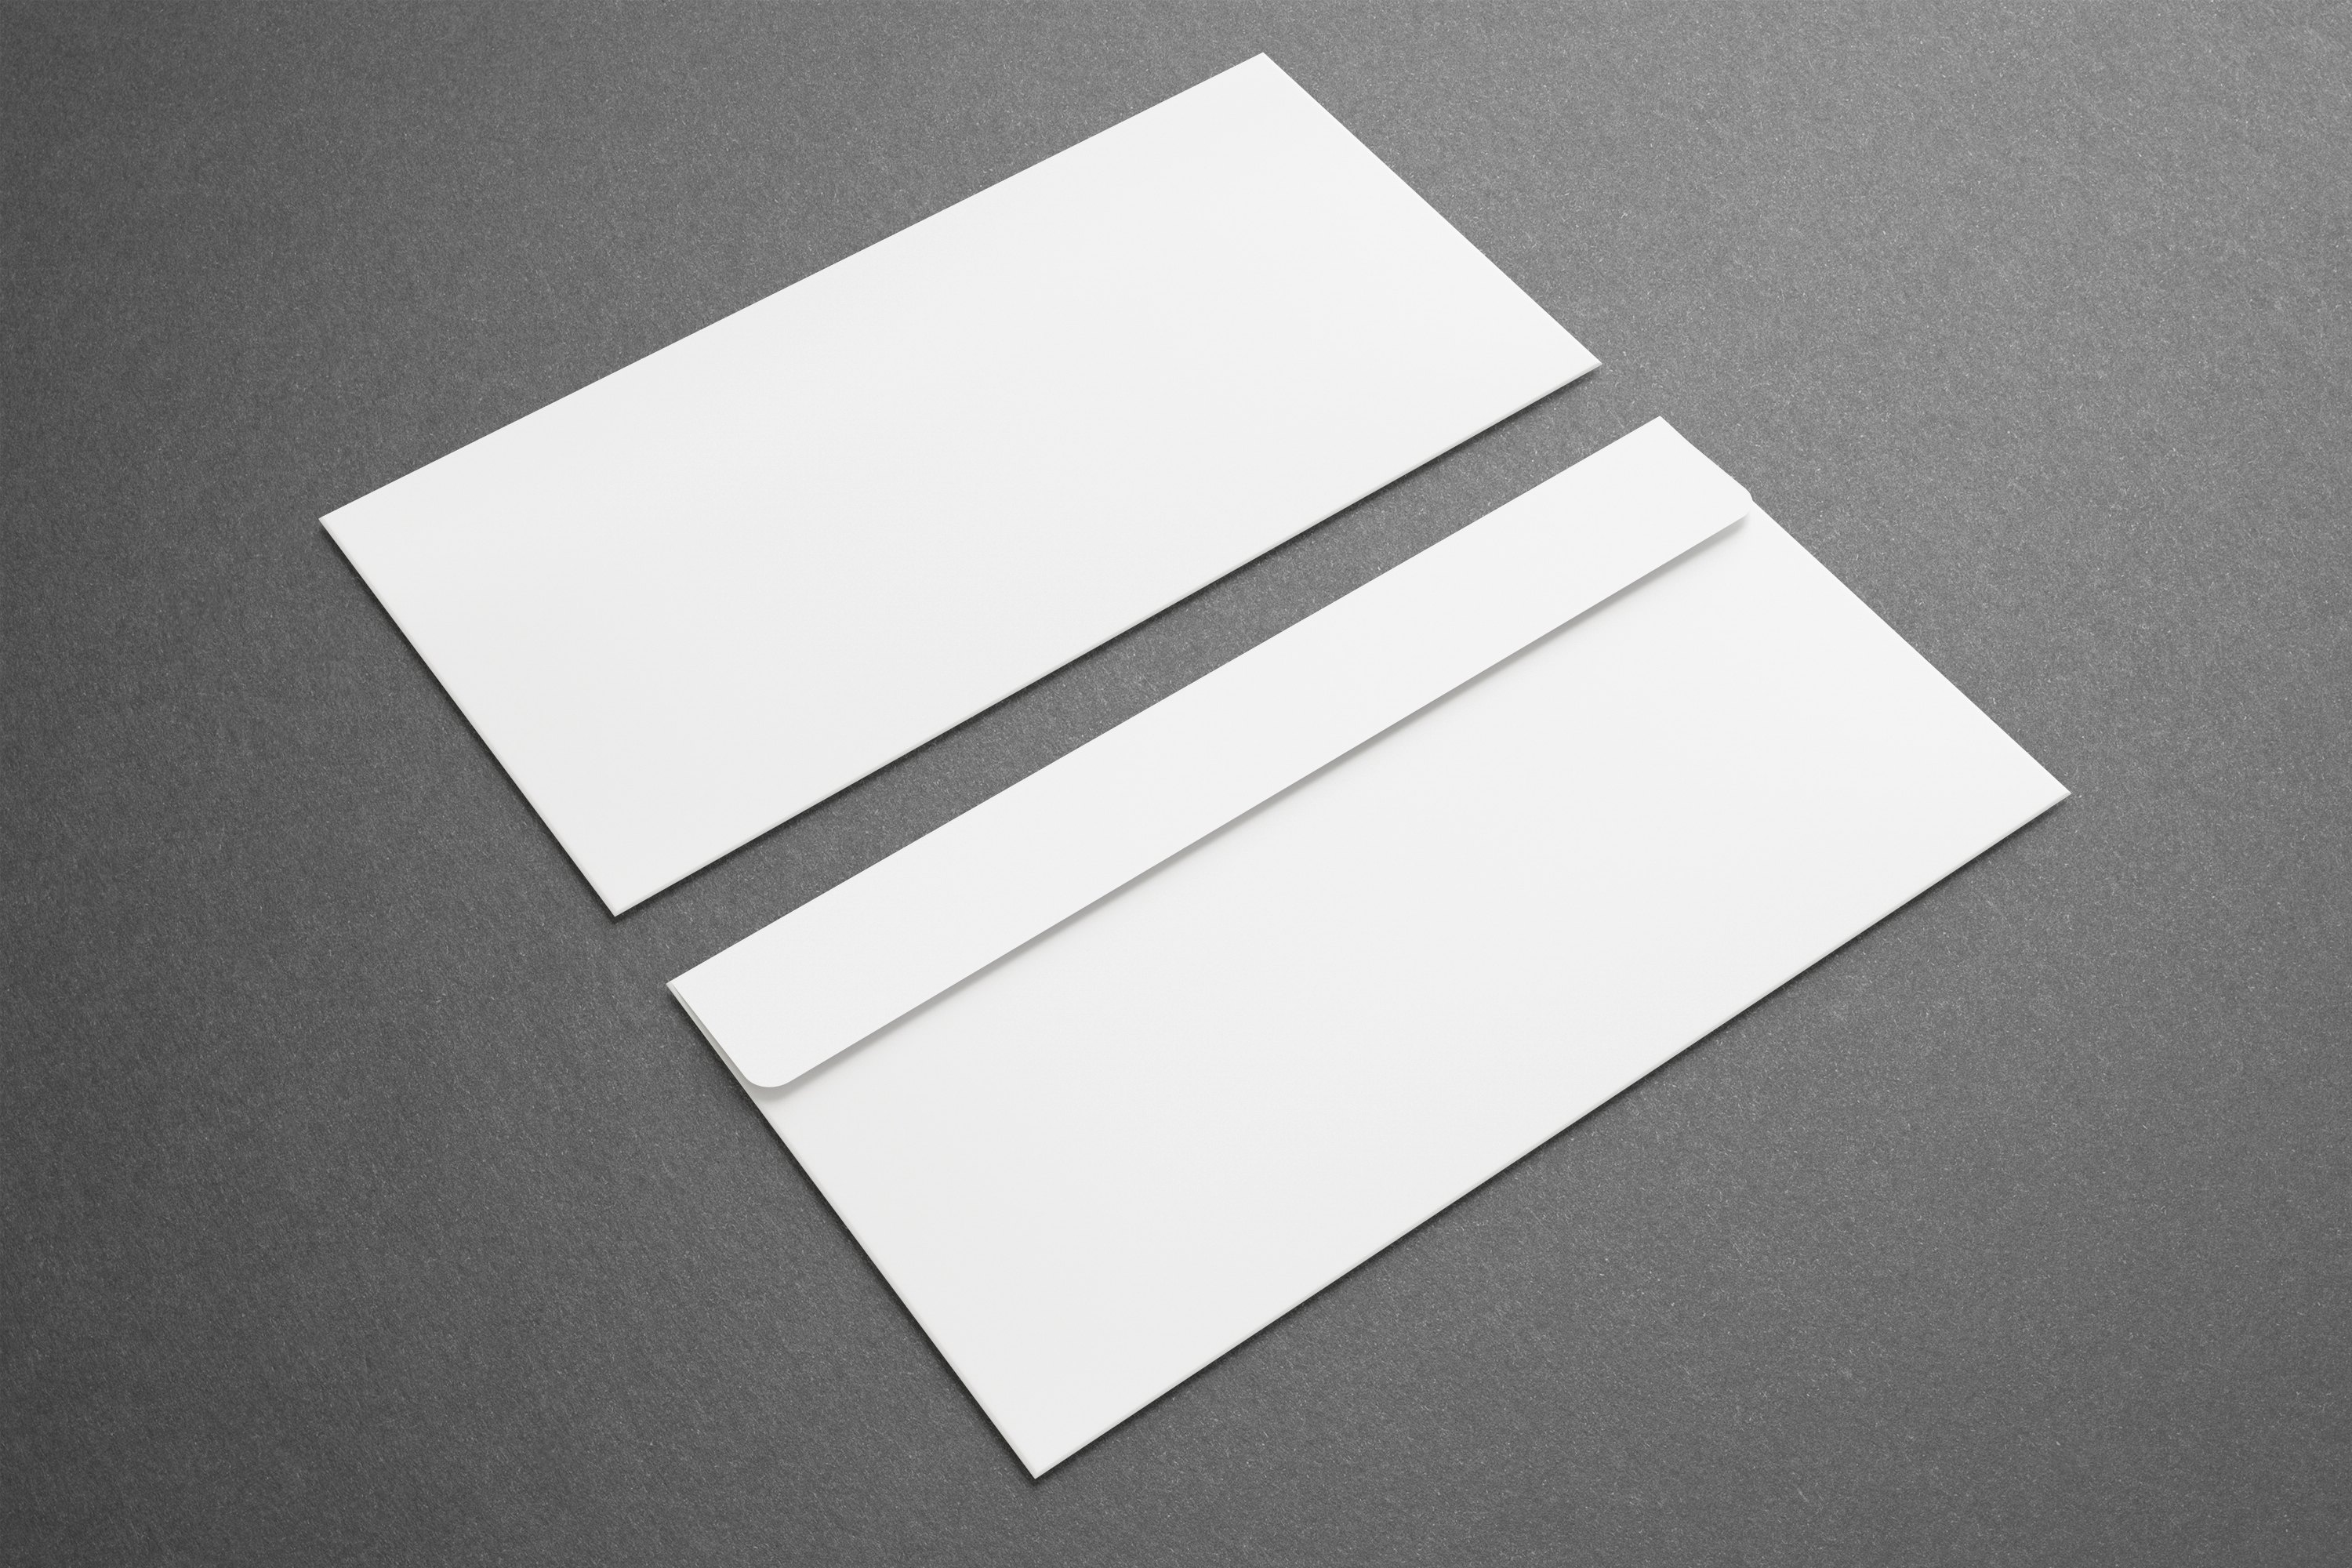 How To Make An Envelope Out Of 8 5 By 11 Inch Paper Ehow